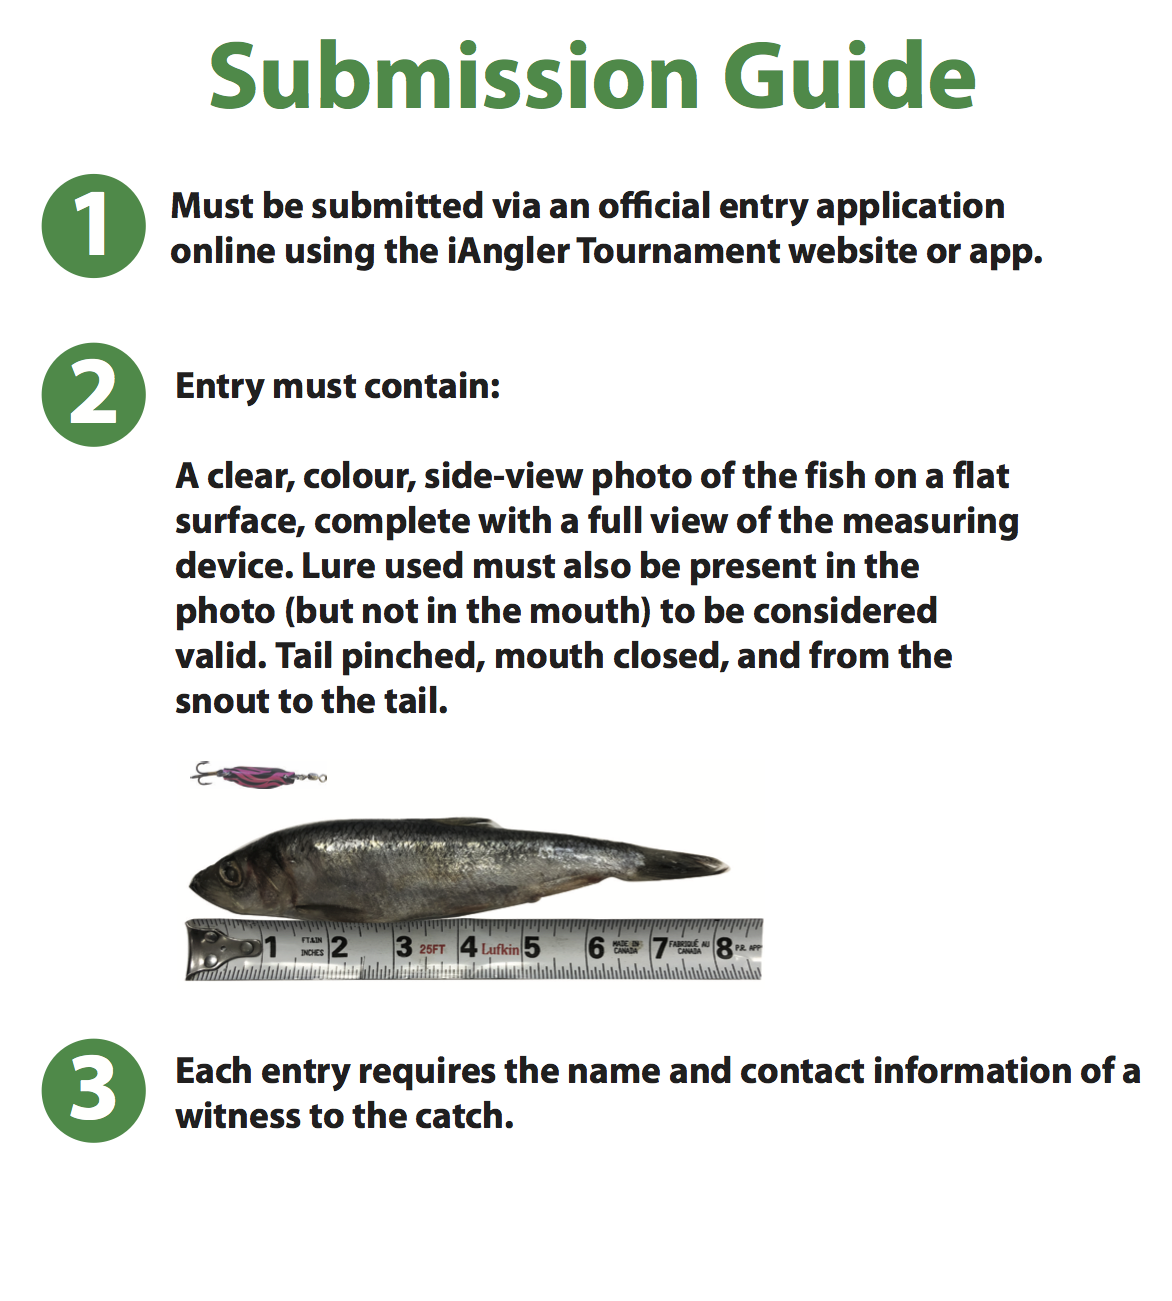 Battle of the Brands - Catch Submission Guide